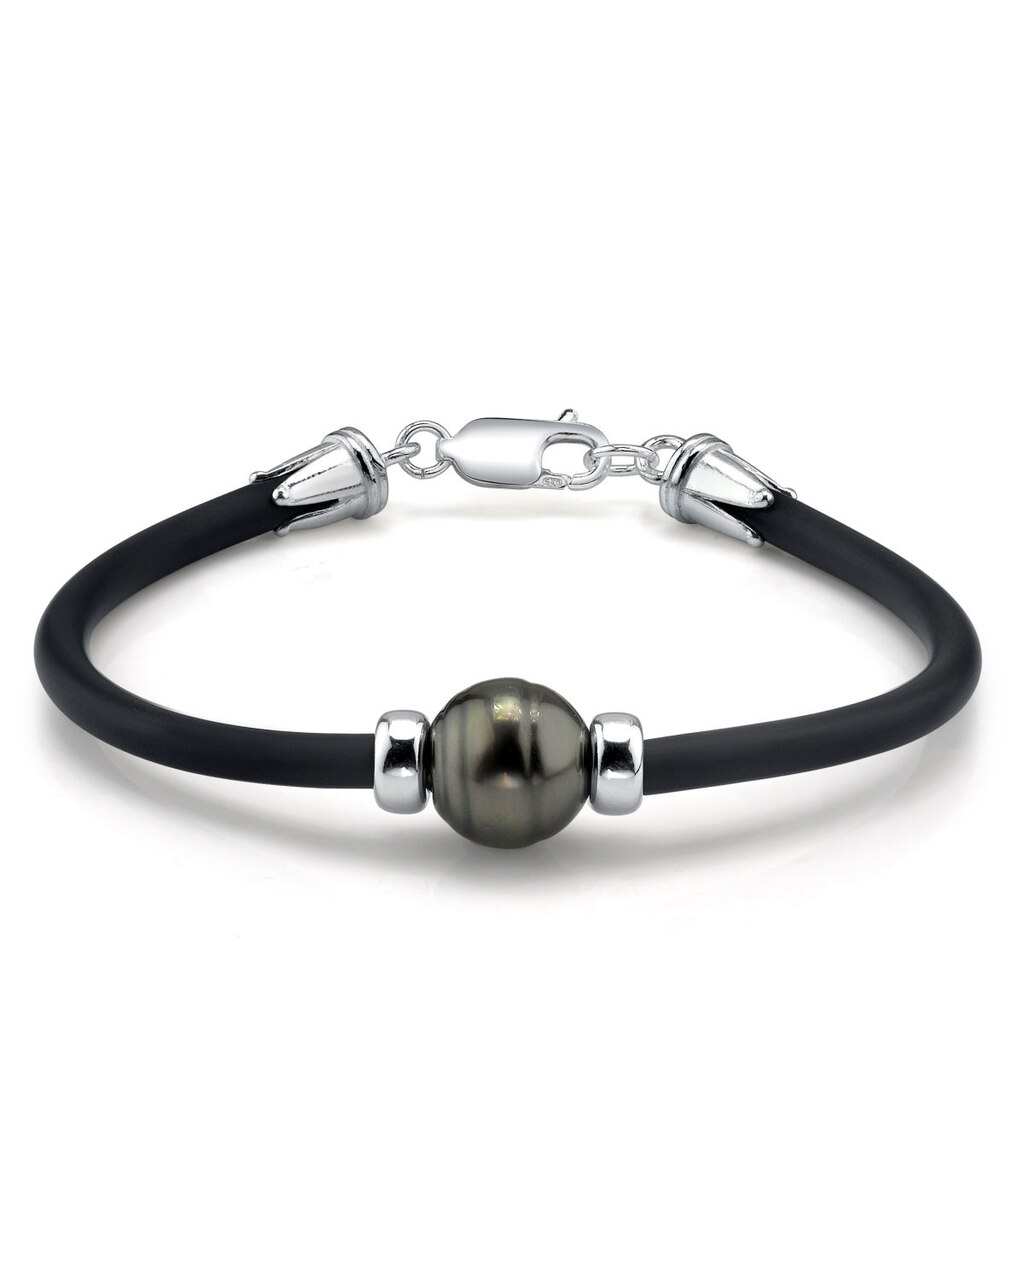 This beautiful bracelet features a baroque shaped Tahitian South Sea pearl